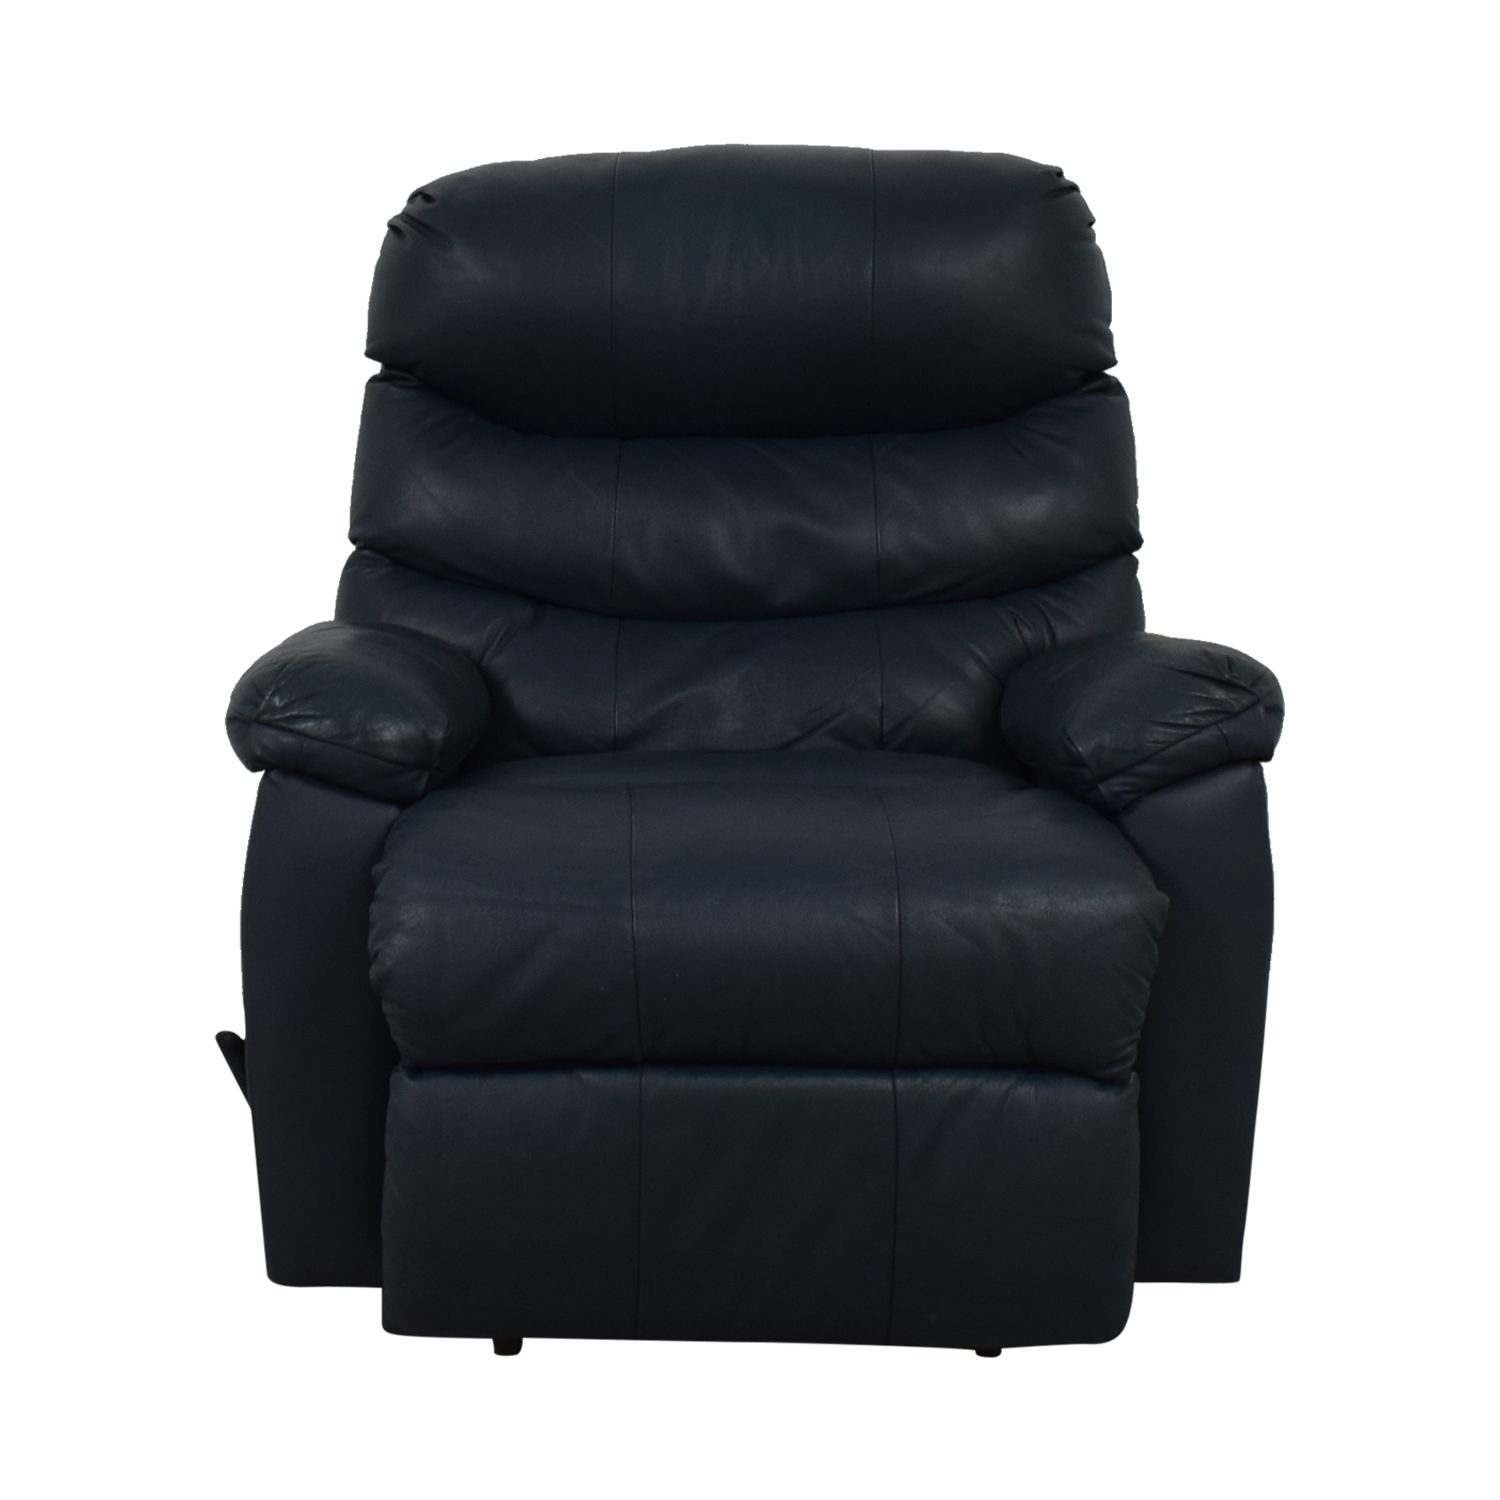 Action Industries Action Industries Recliner second hand